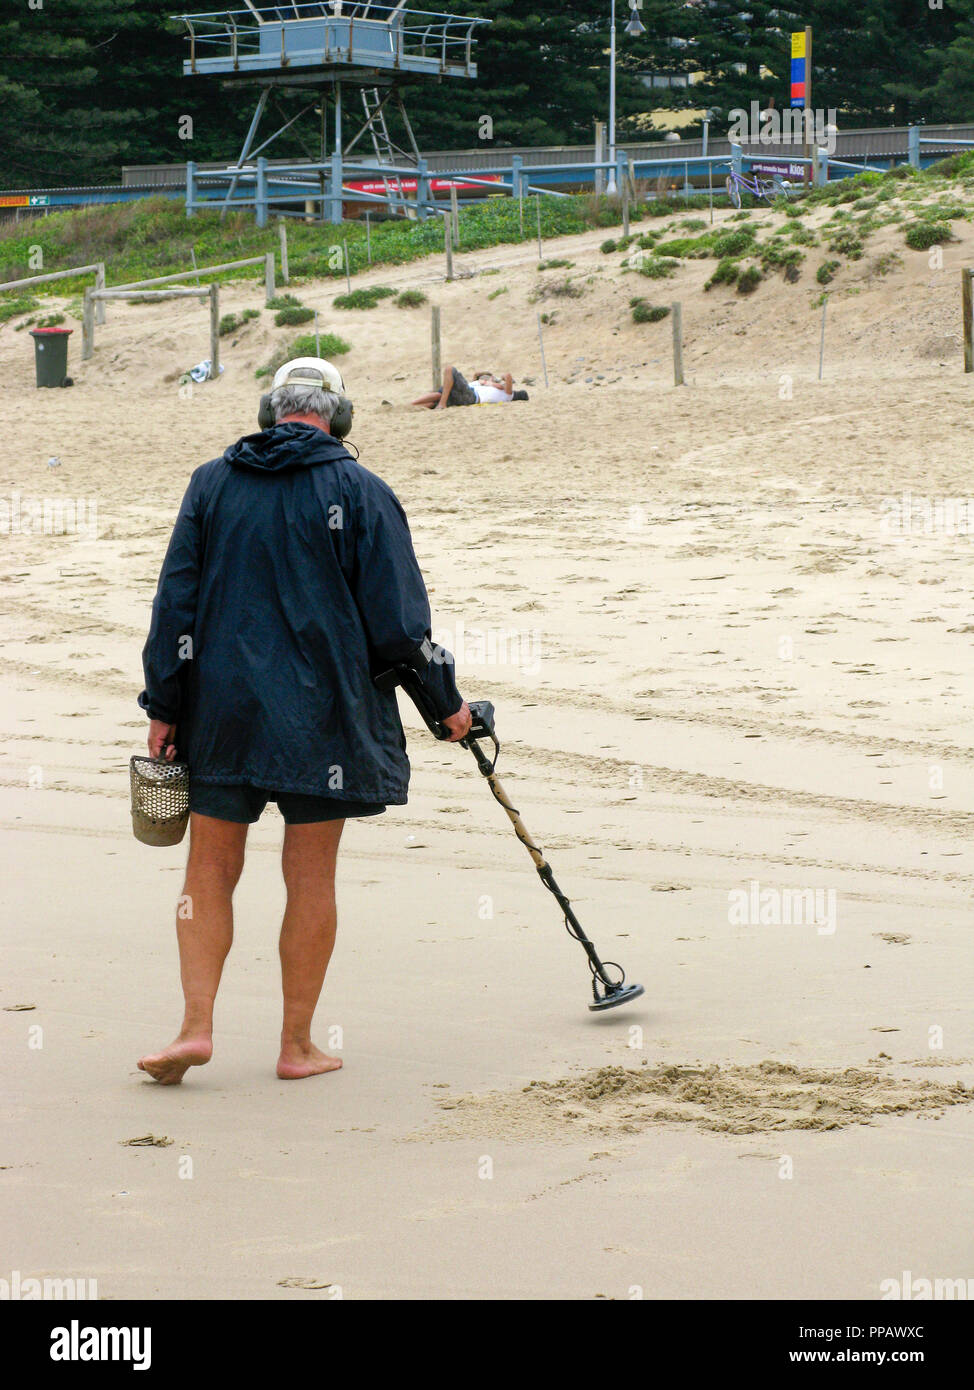 Man with METAL DETECTOR t a beach outside Sydney Australia,search for hidden metal objects - Stock Image